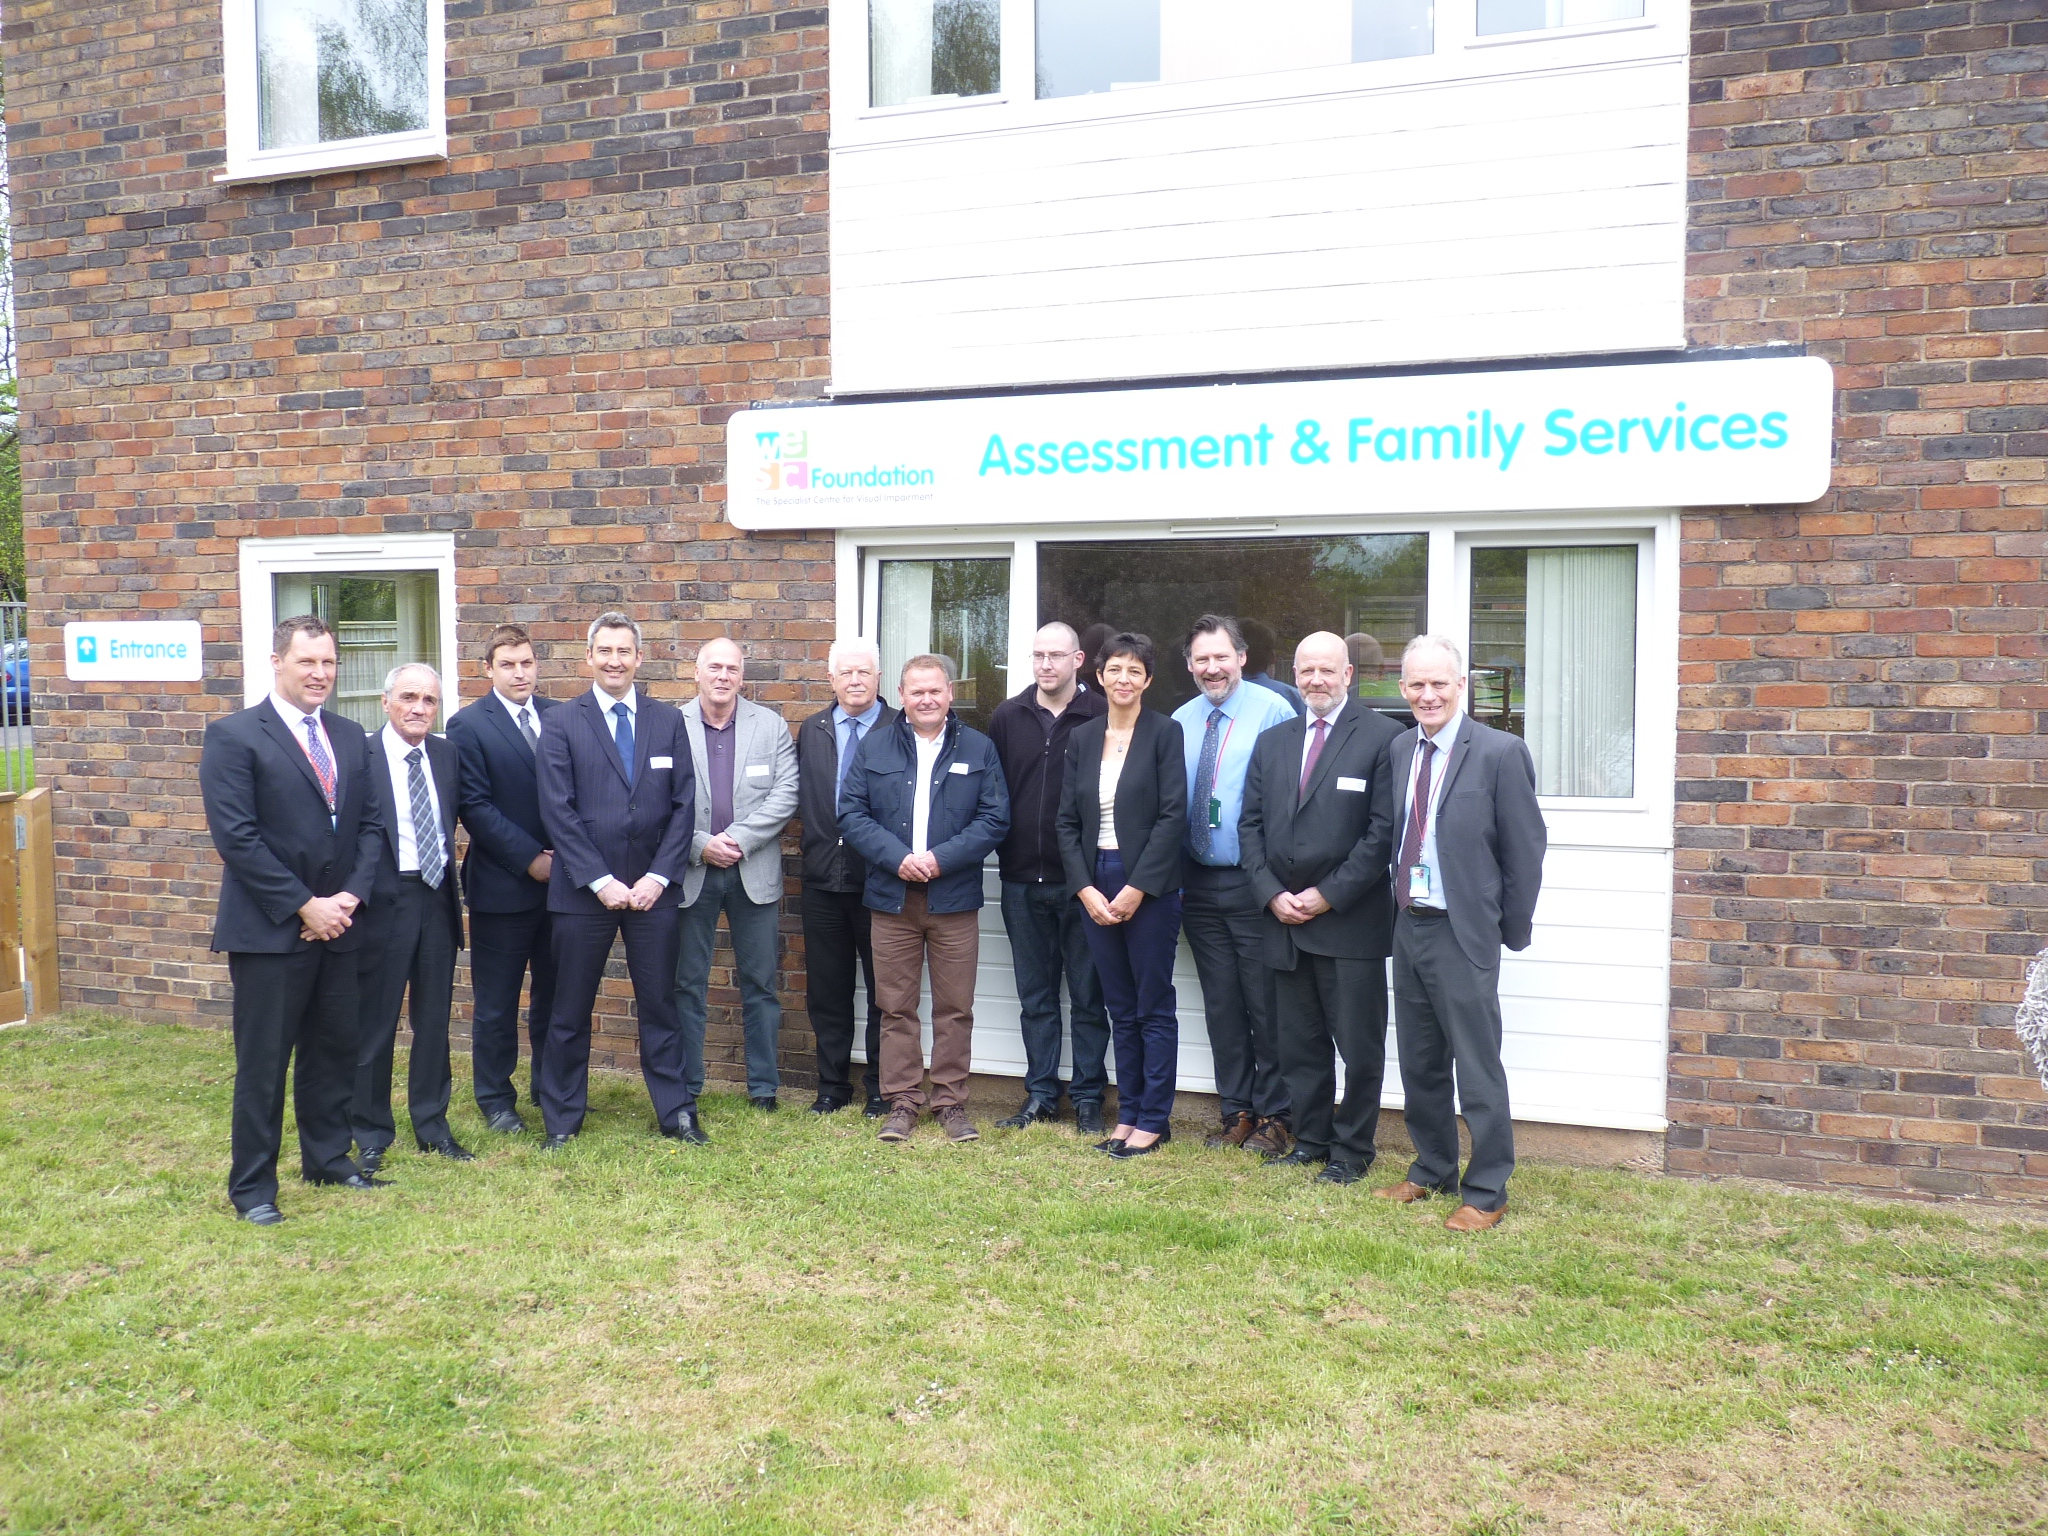 Exeter Firm Refurbishes Wesc Family Centre The Exeter Daily